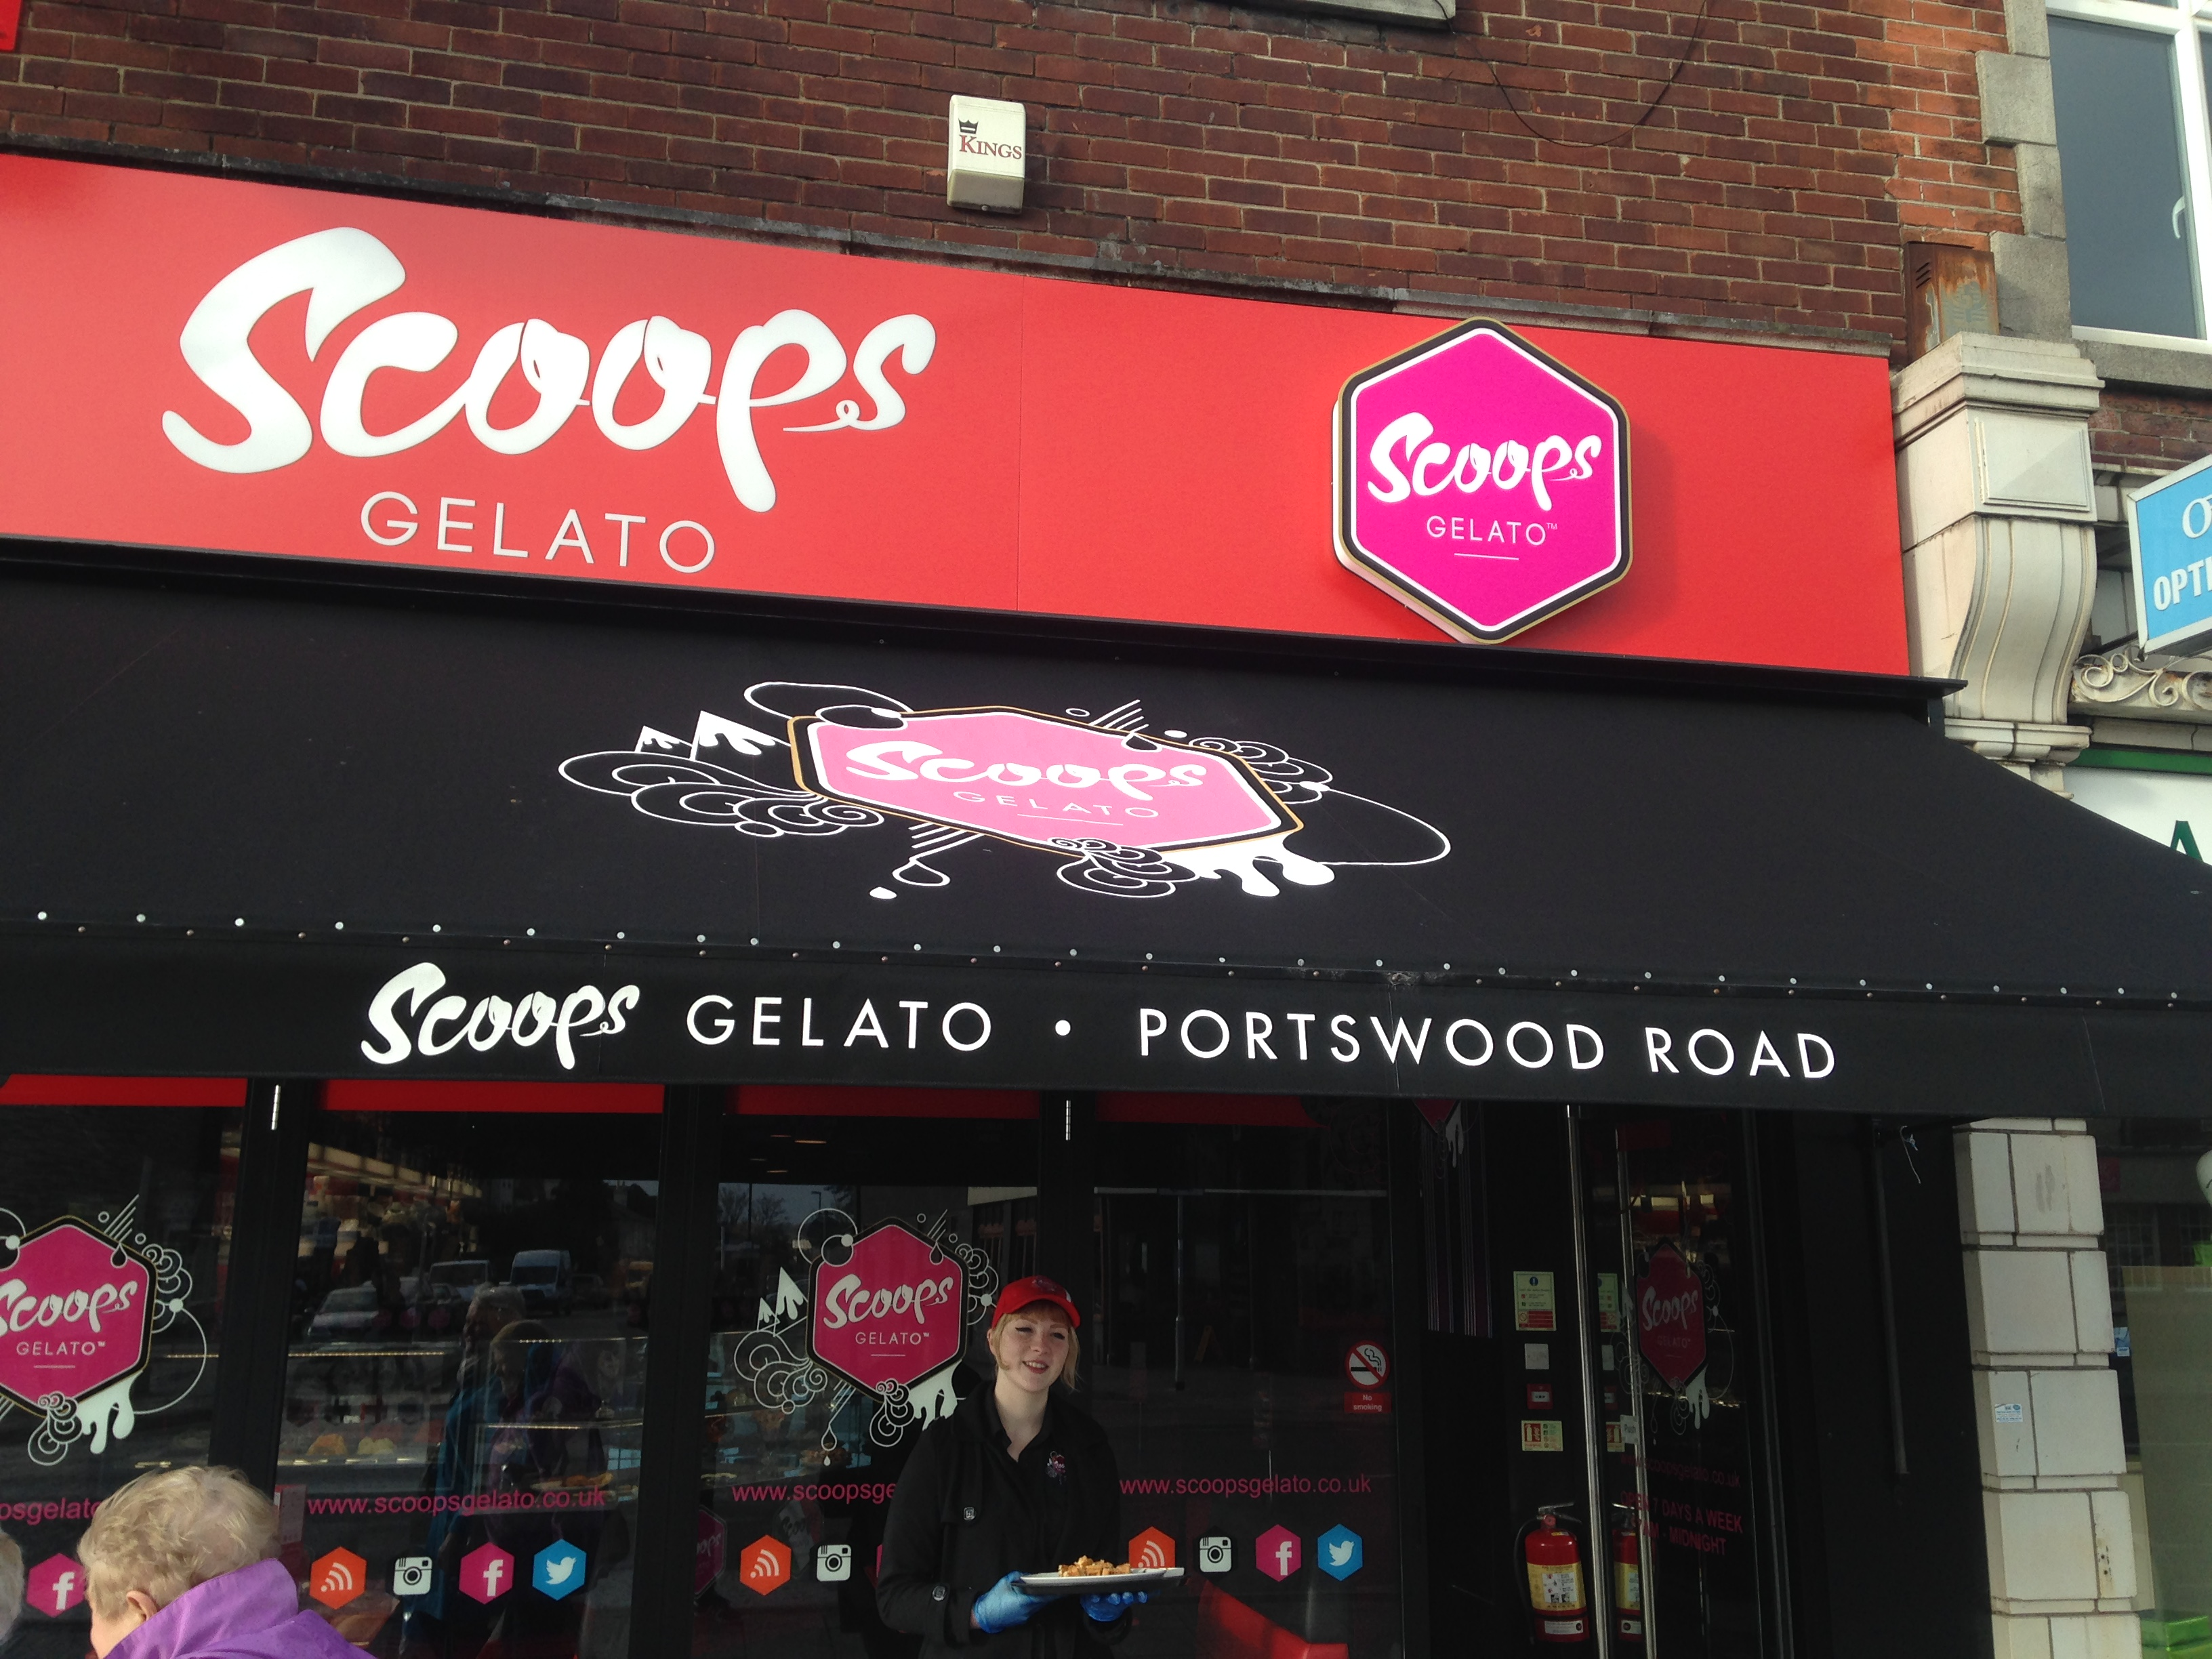 Scoops Gelato Here To Stay